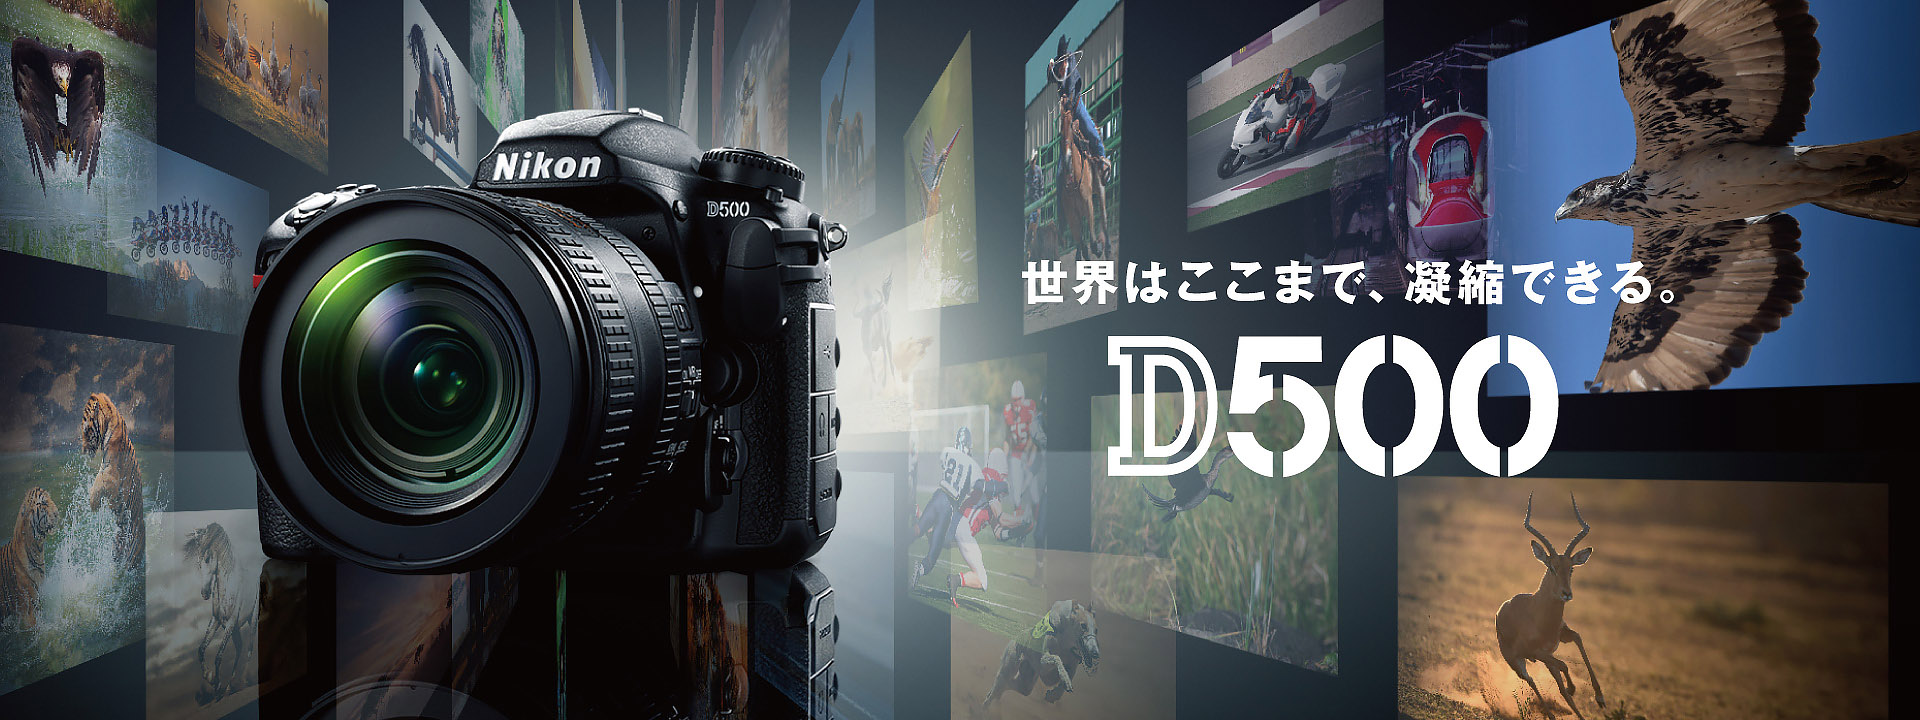 http://www.nikon-image.com/products/slr/lineup/d500/img/index/main_01.jpg